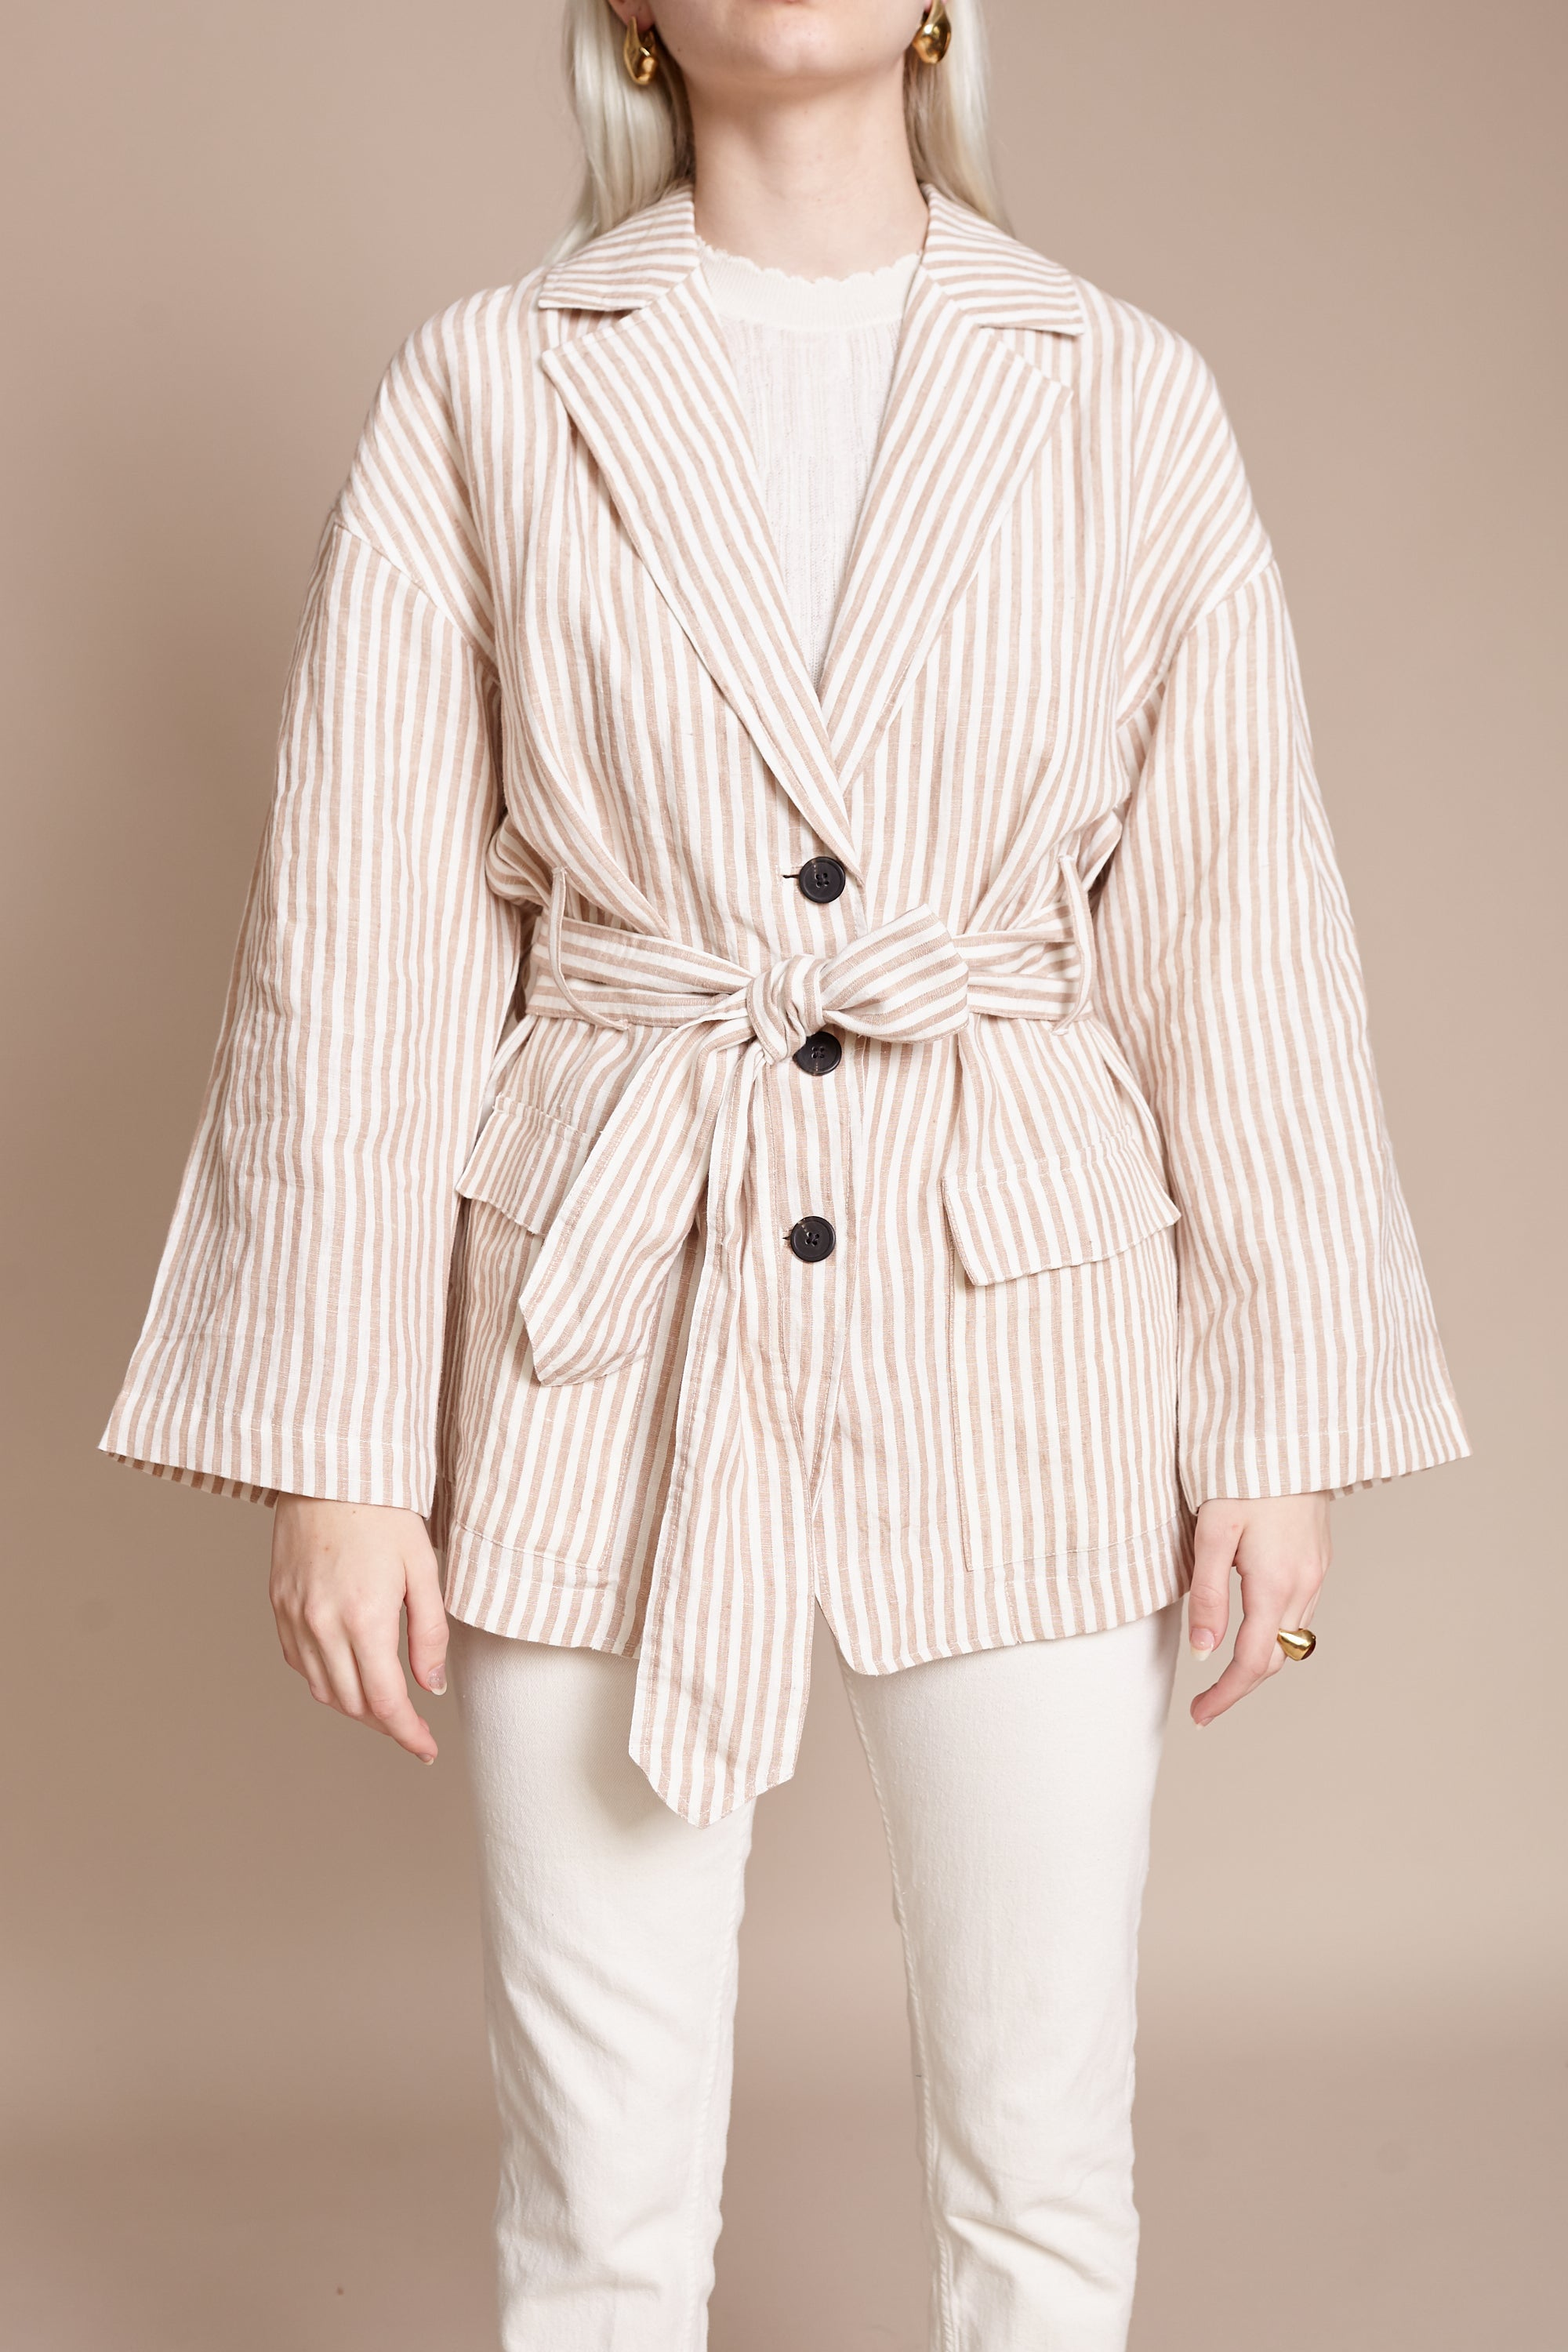 Atticus Jacket in Cream Camel